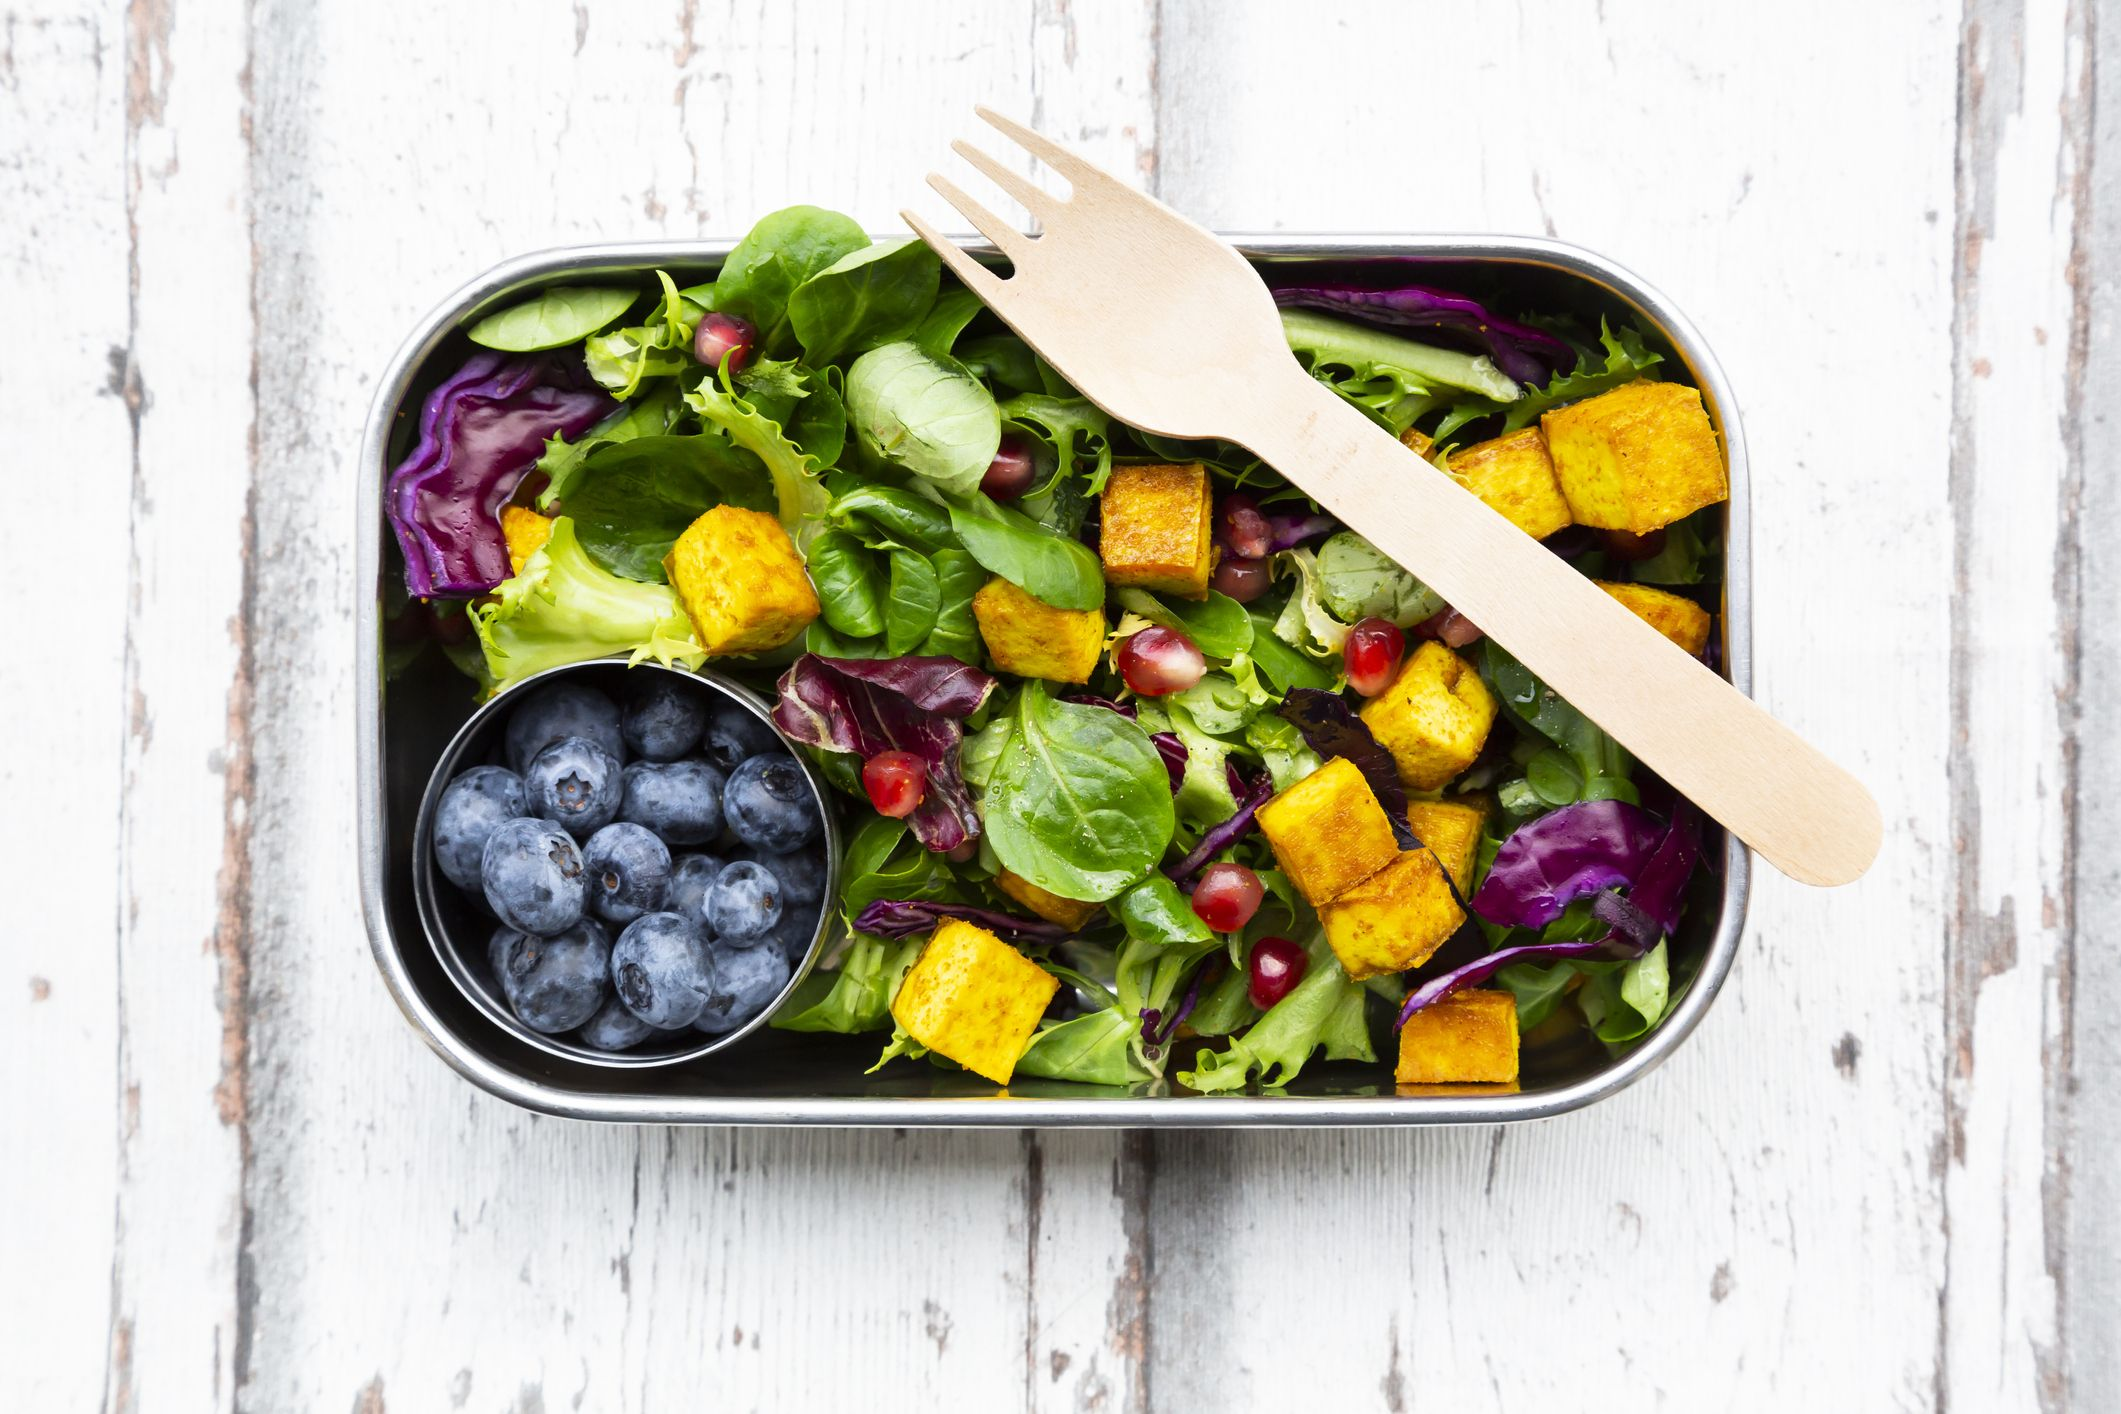 Healthy Cold Lunches: 16 Ideas for a Next-Level Pack-Up